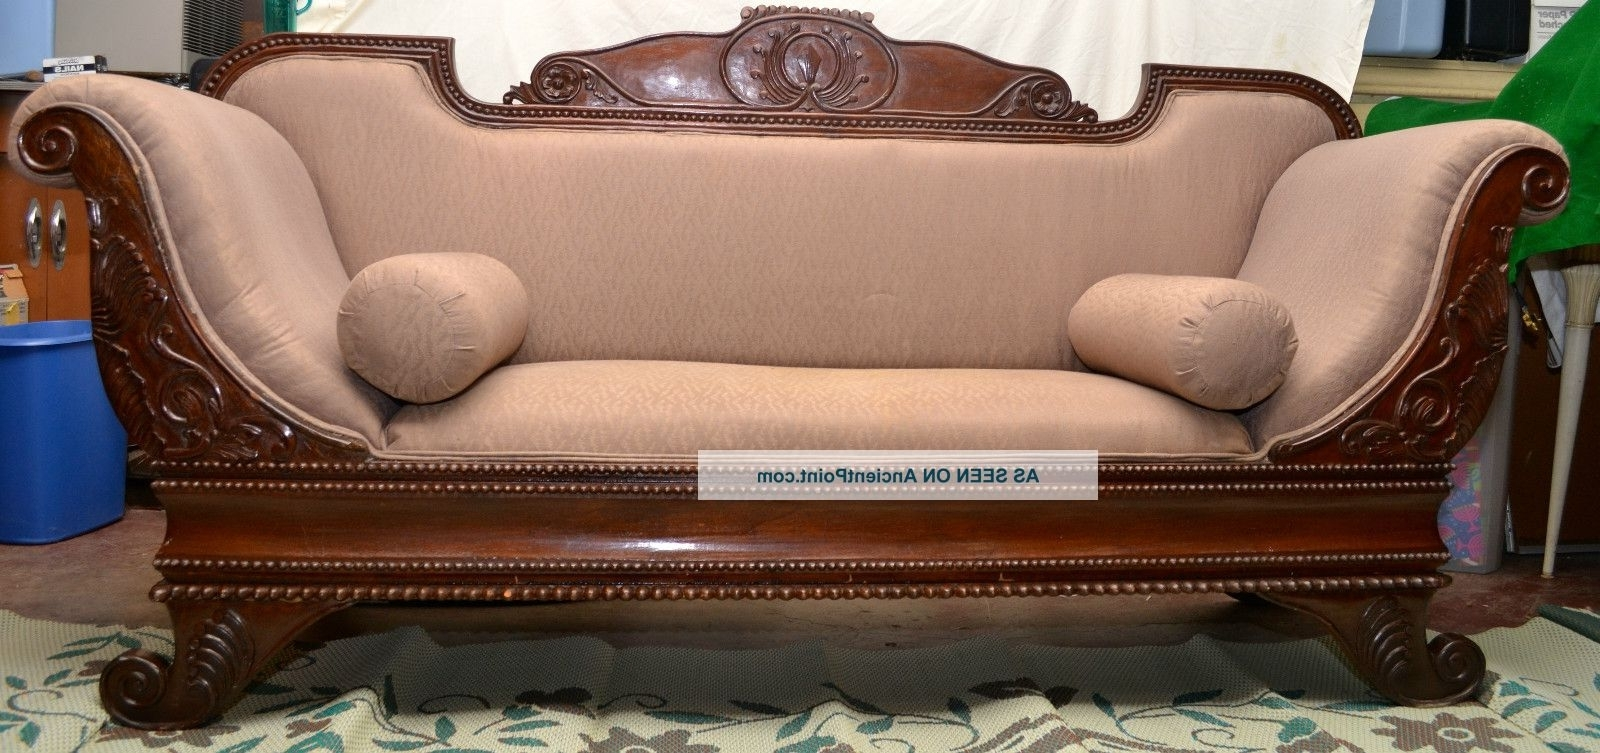 2019 Gothic Sofas Intended For Cleopatra Gothic/old West/victorian Sofa 1800 1899 Photo (View 3 of 20)